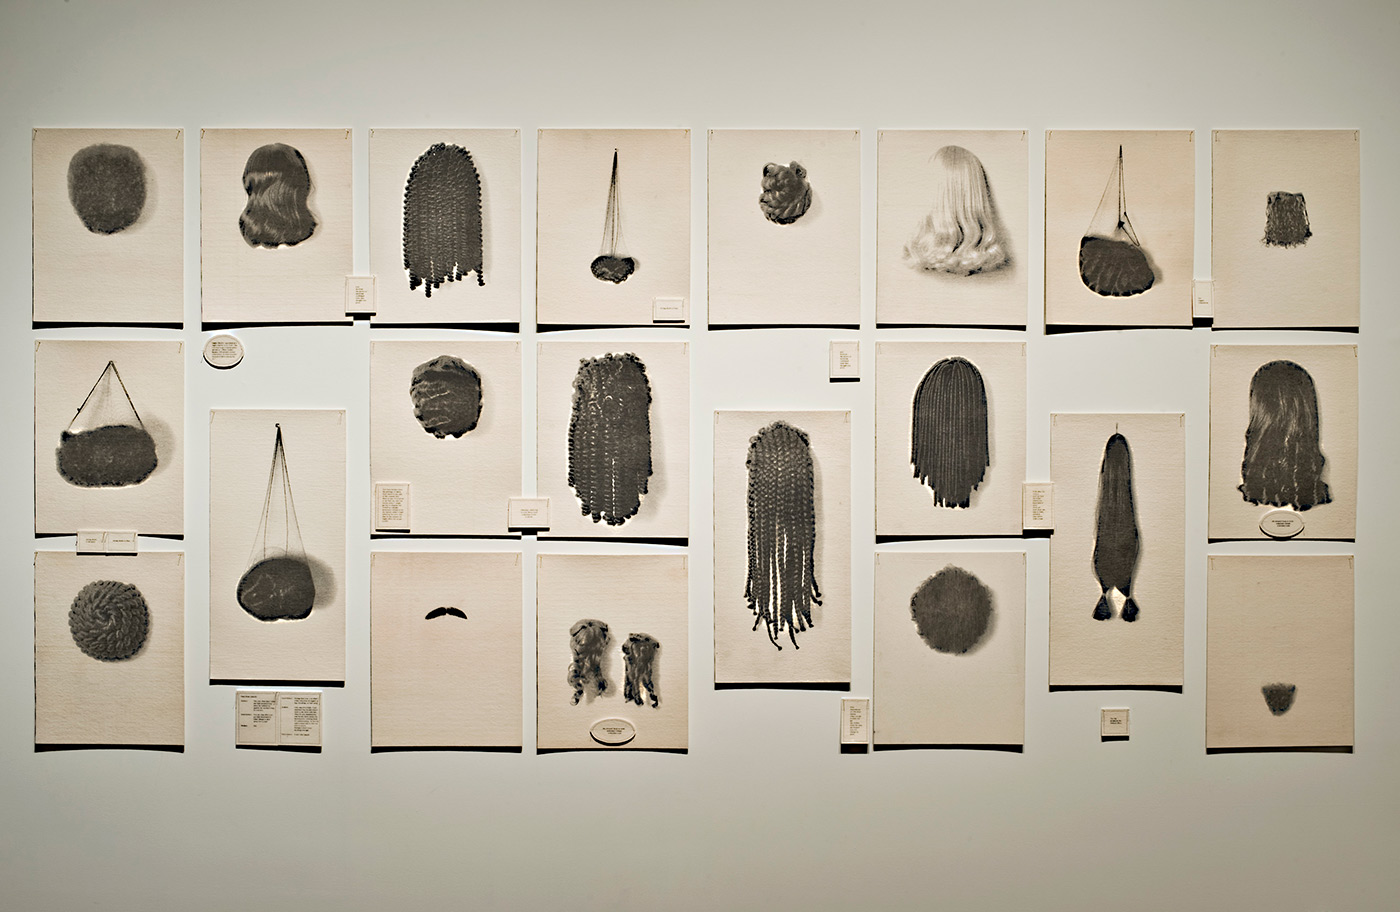 Wigs waterless lithographs on felt